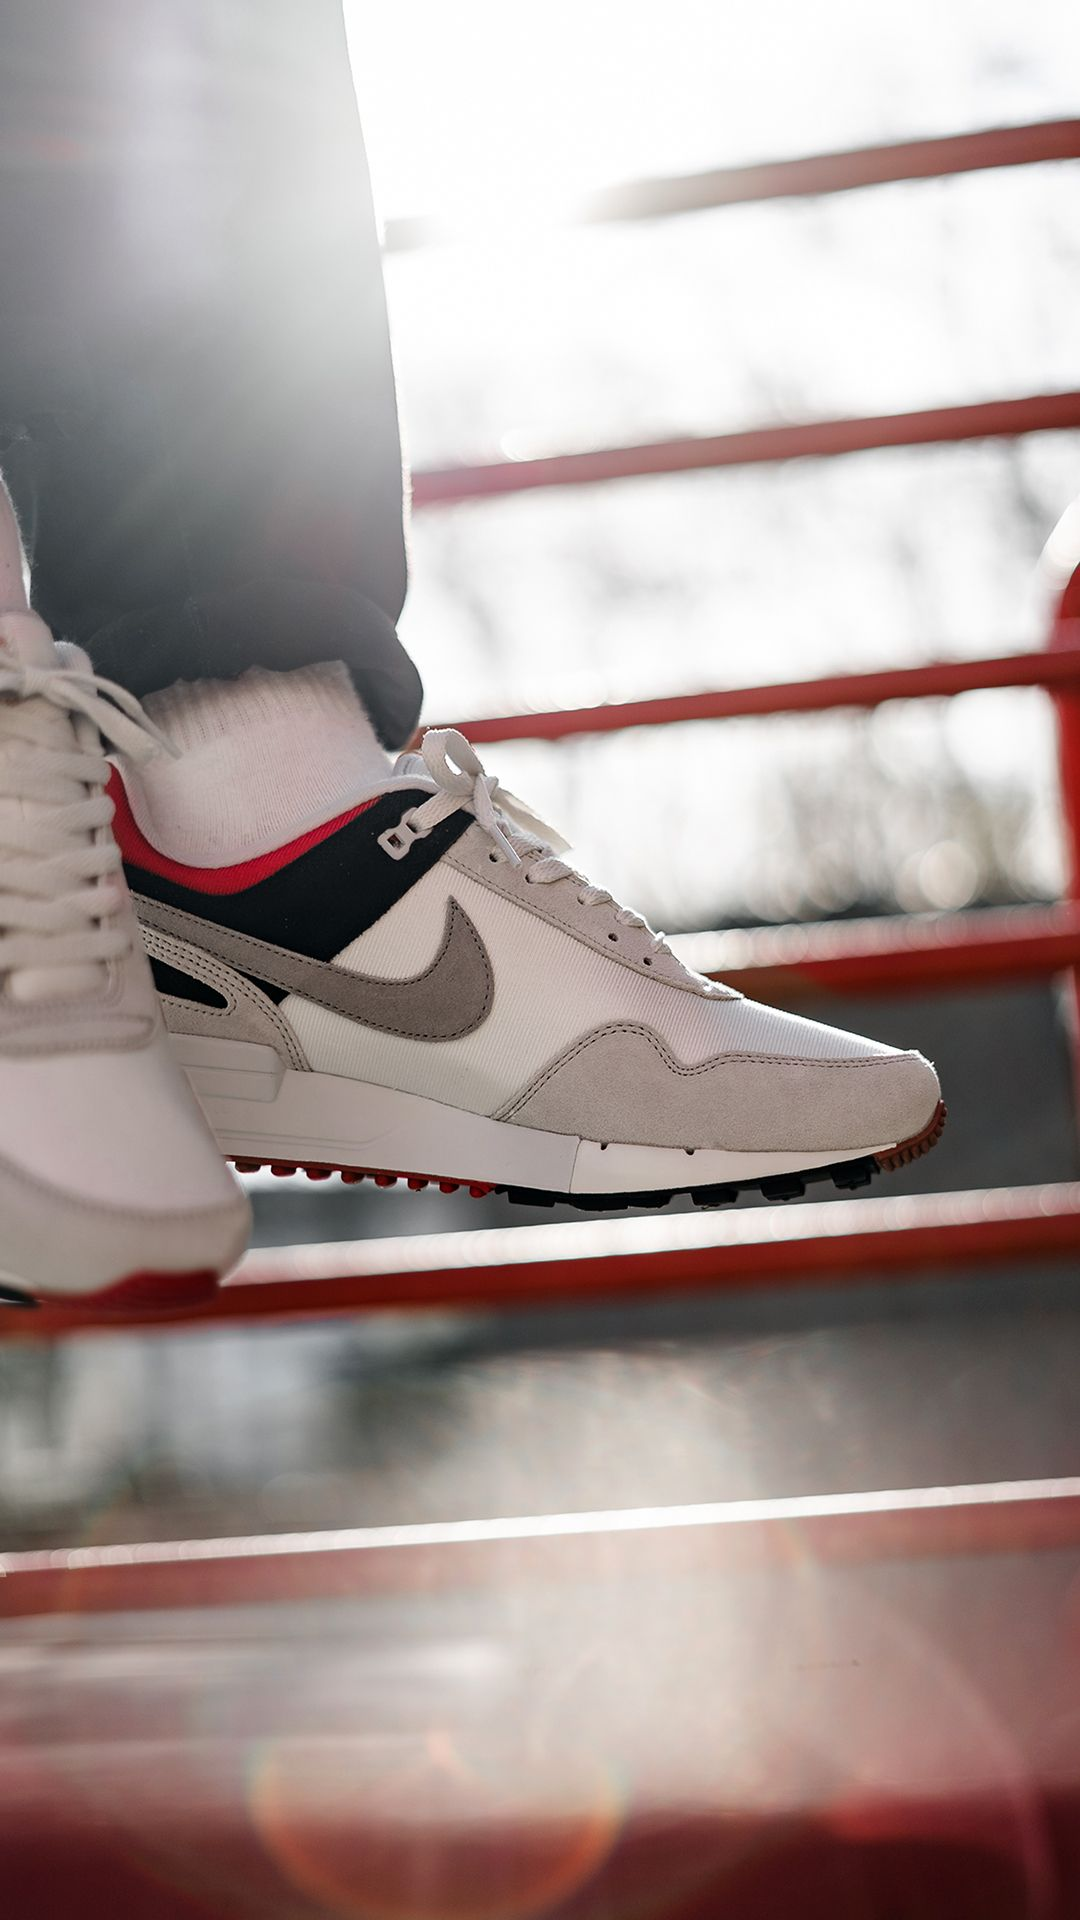 Do You like older and retro styles? Well, then the new Nike